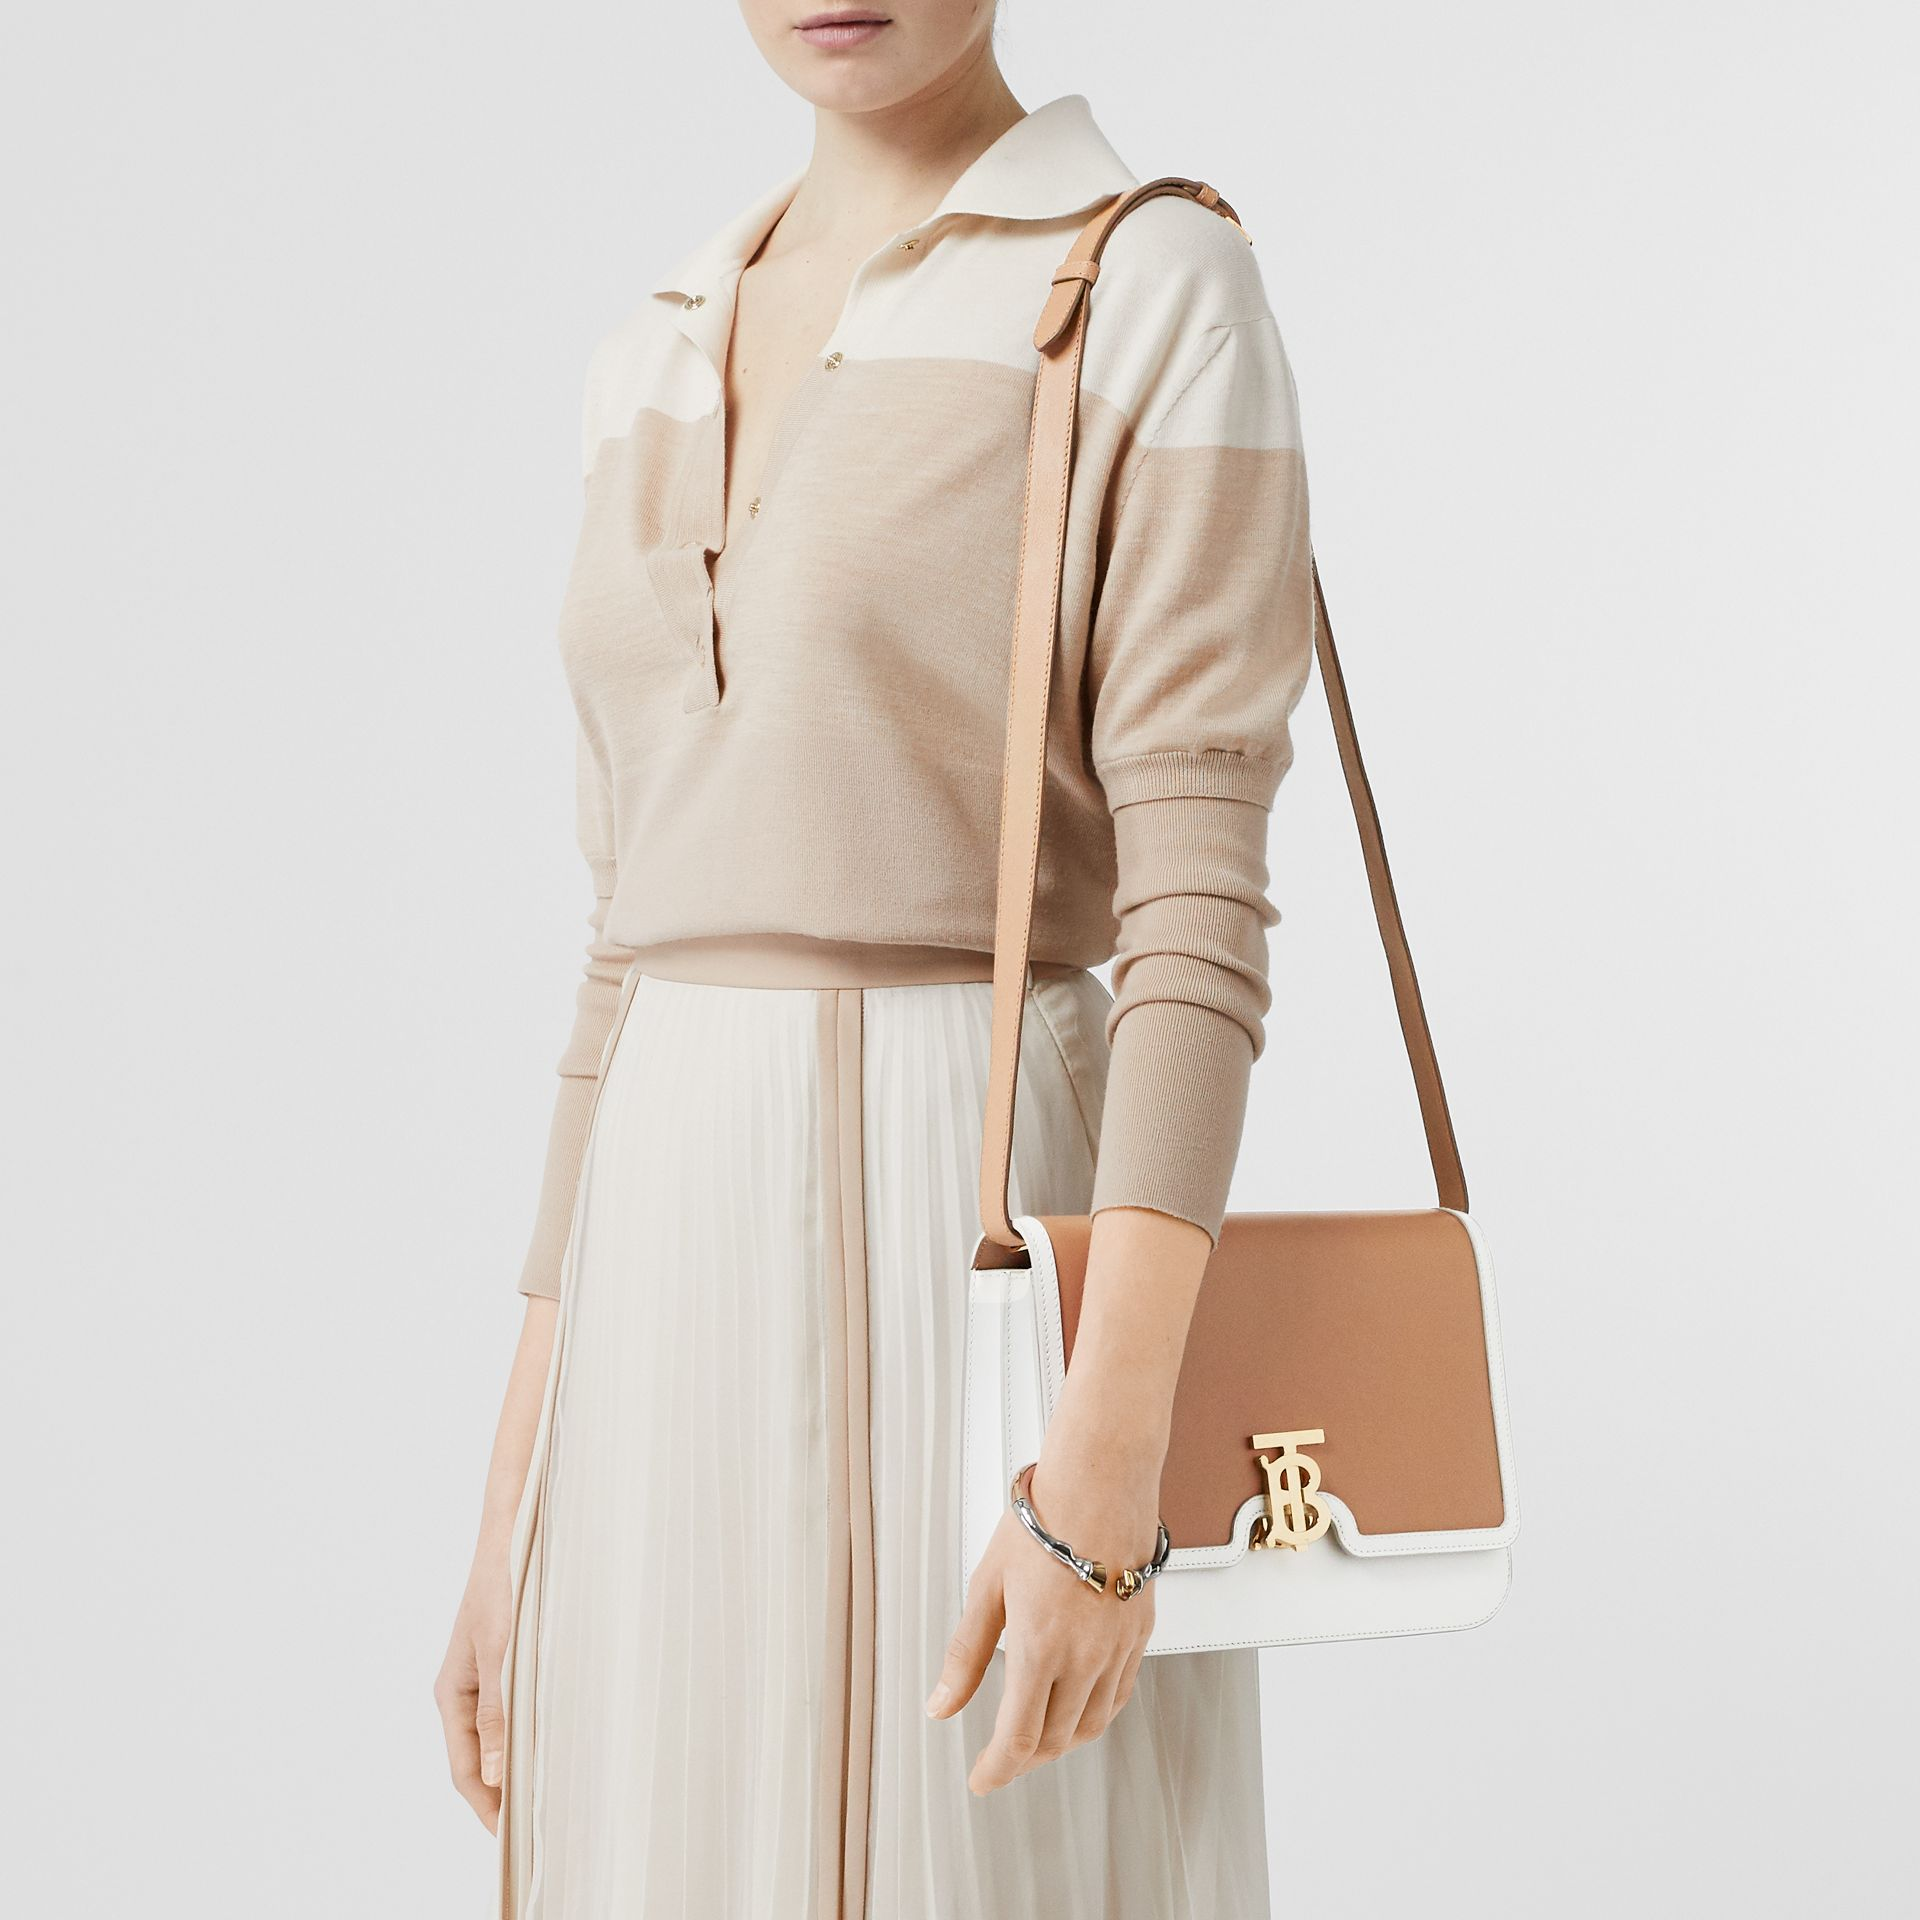 Medium Two-tone Leather TB Bag in Chalk White/light Camel - Women | Burberry United States - gallery image 2